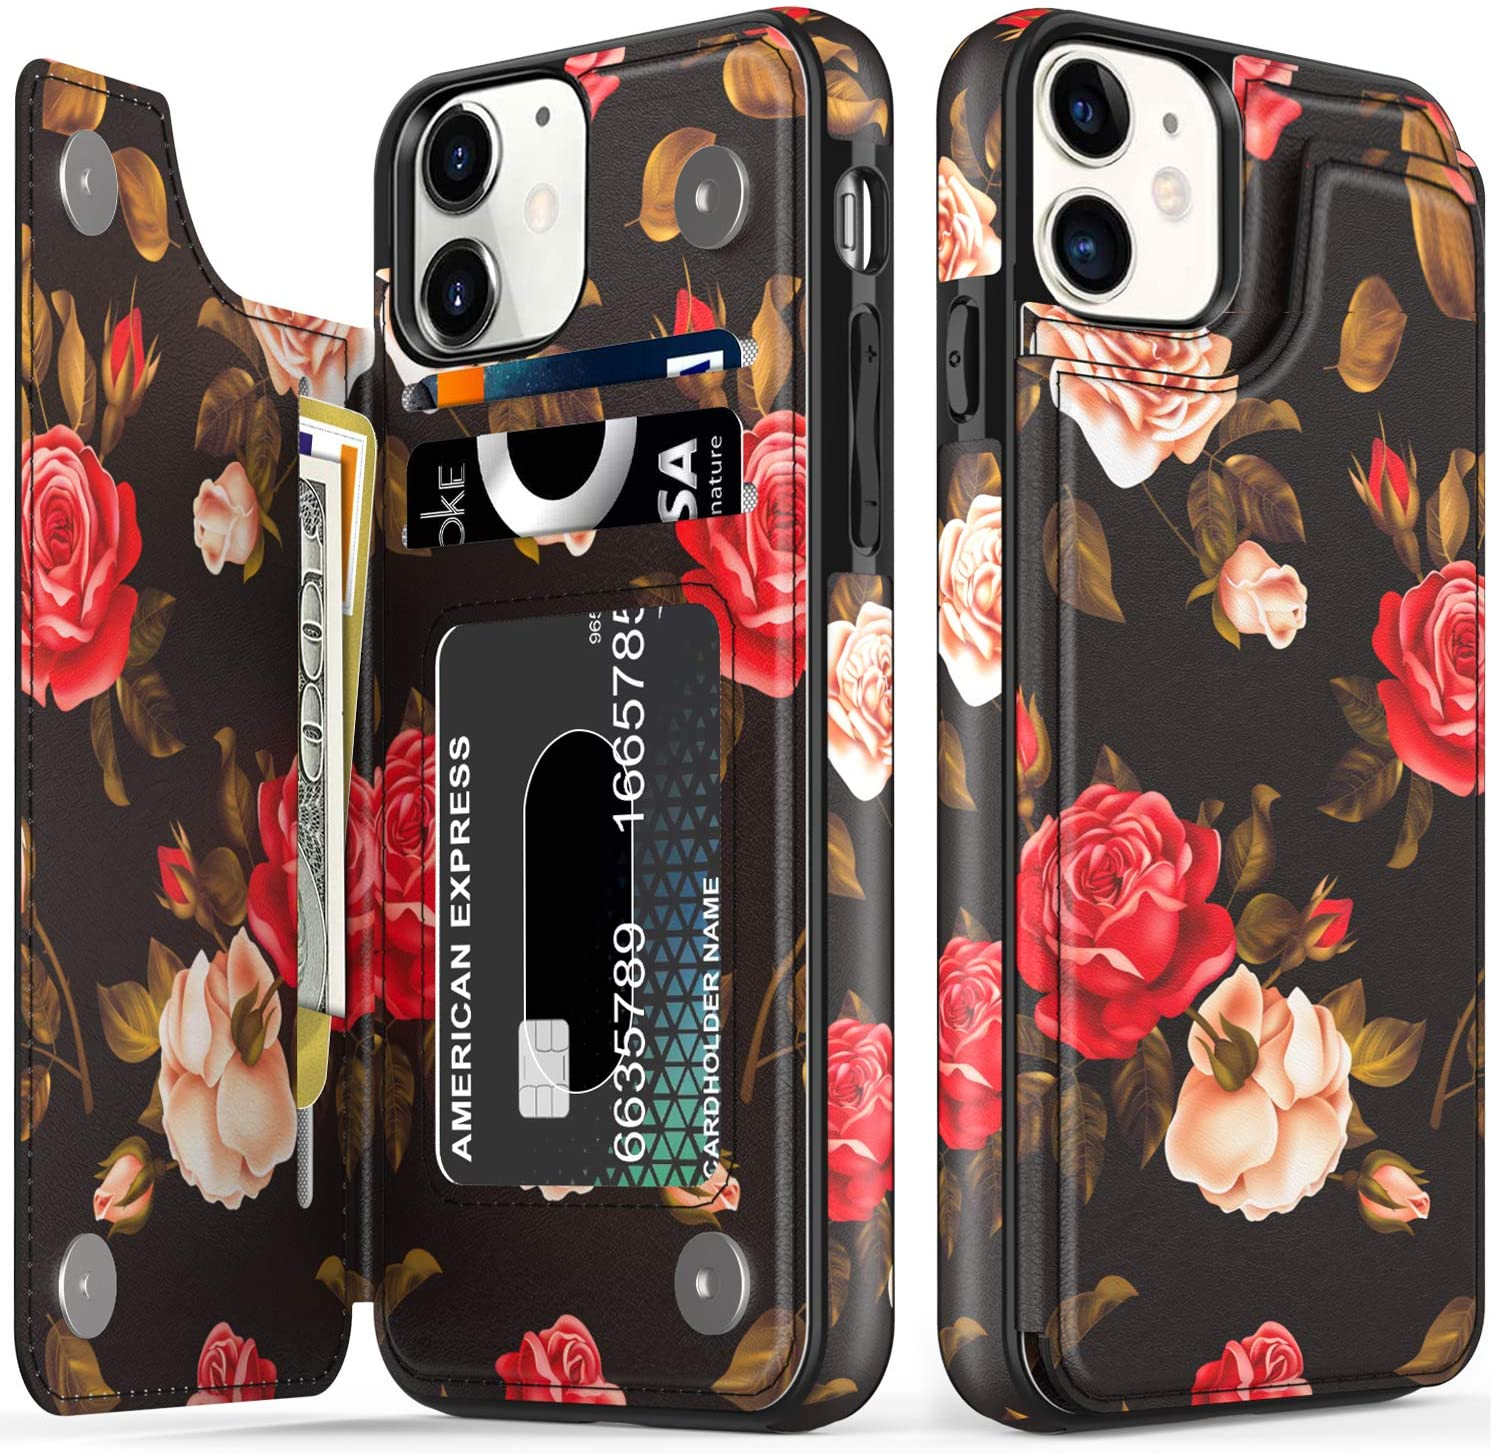 LETO iPhone 11 Case,Leather Wallet Case with Fashion Floral Flower Designs for Girls Women,with Kickstand Card Slots Cover,Protective Phone Case for Apple iPhone 11 6.1